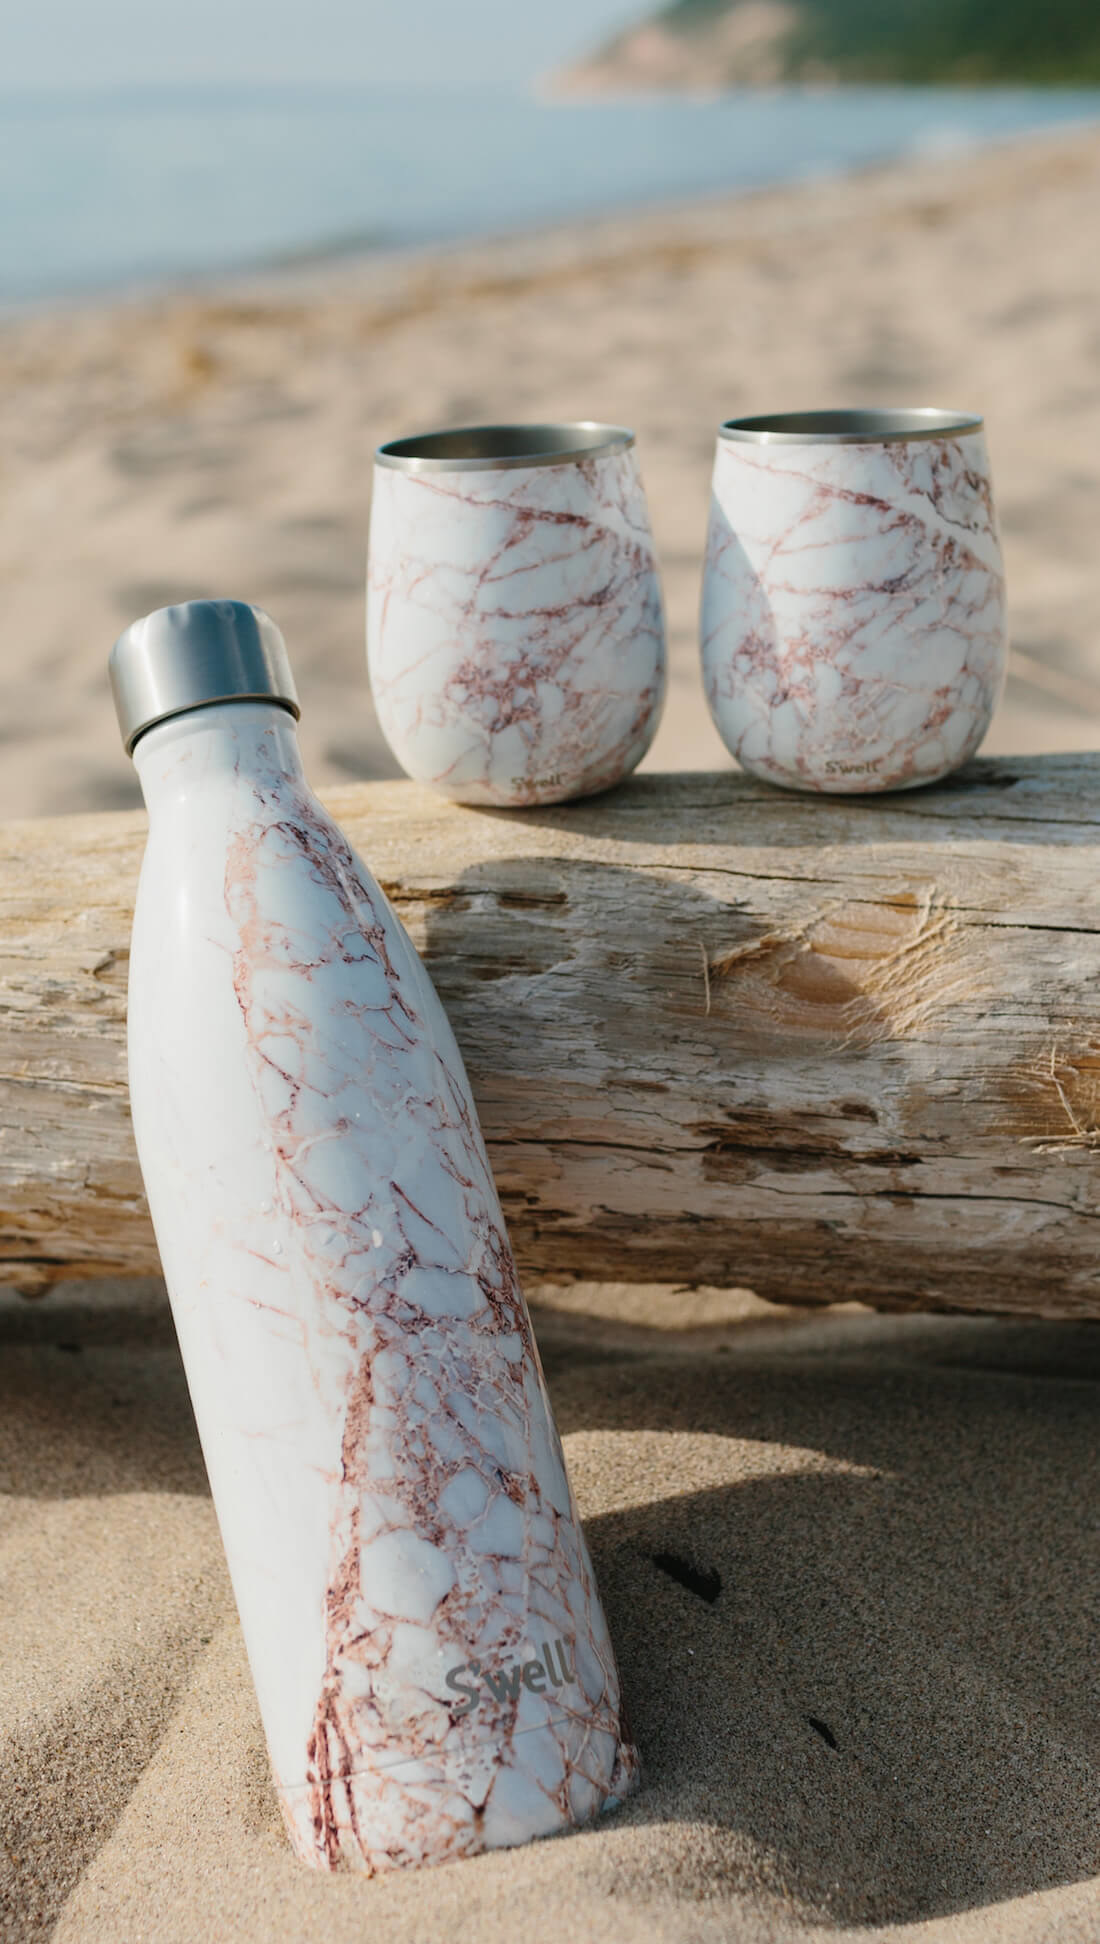 gold and white marble-design S'well water bottle